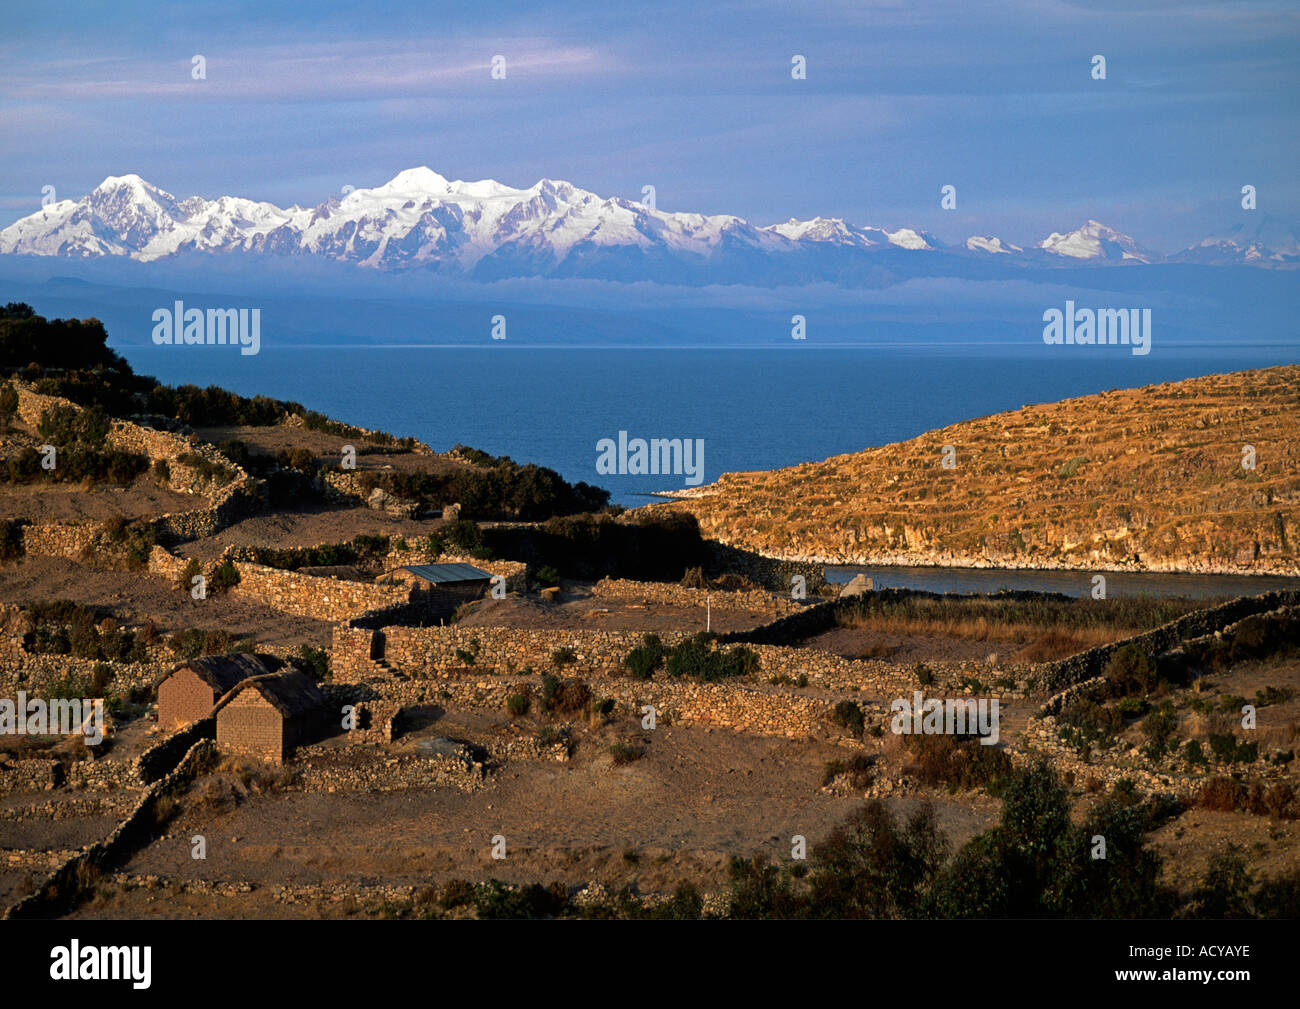 NEVADO ILLAMPU 7010 M is visible behind the Village of CHALLAPAMPA on ISLE DEL SOL LAKE TITICACA - Stock Image